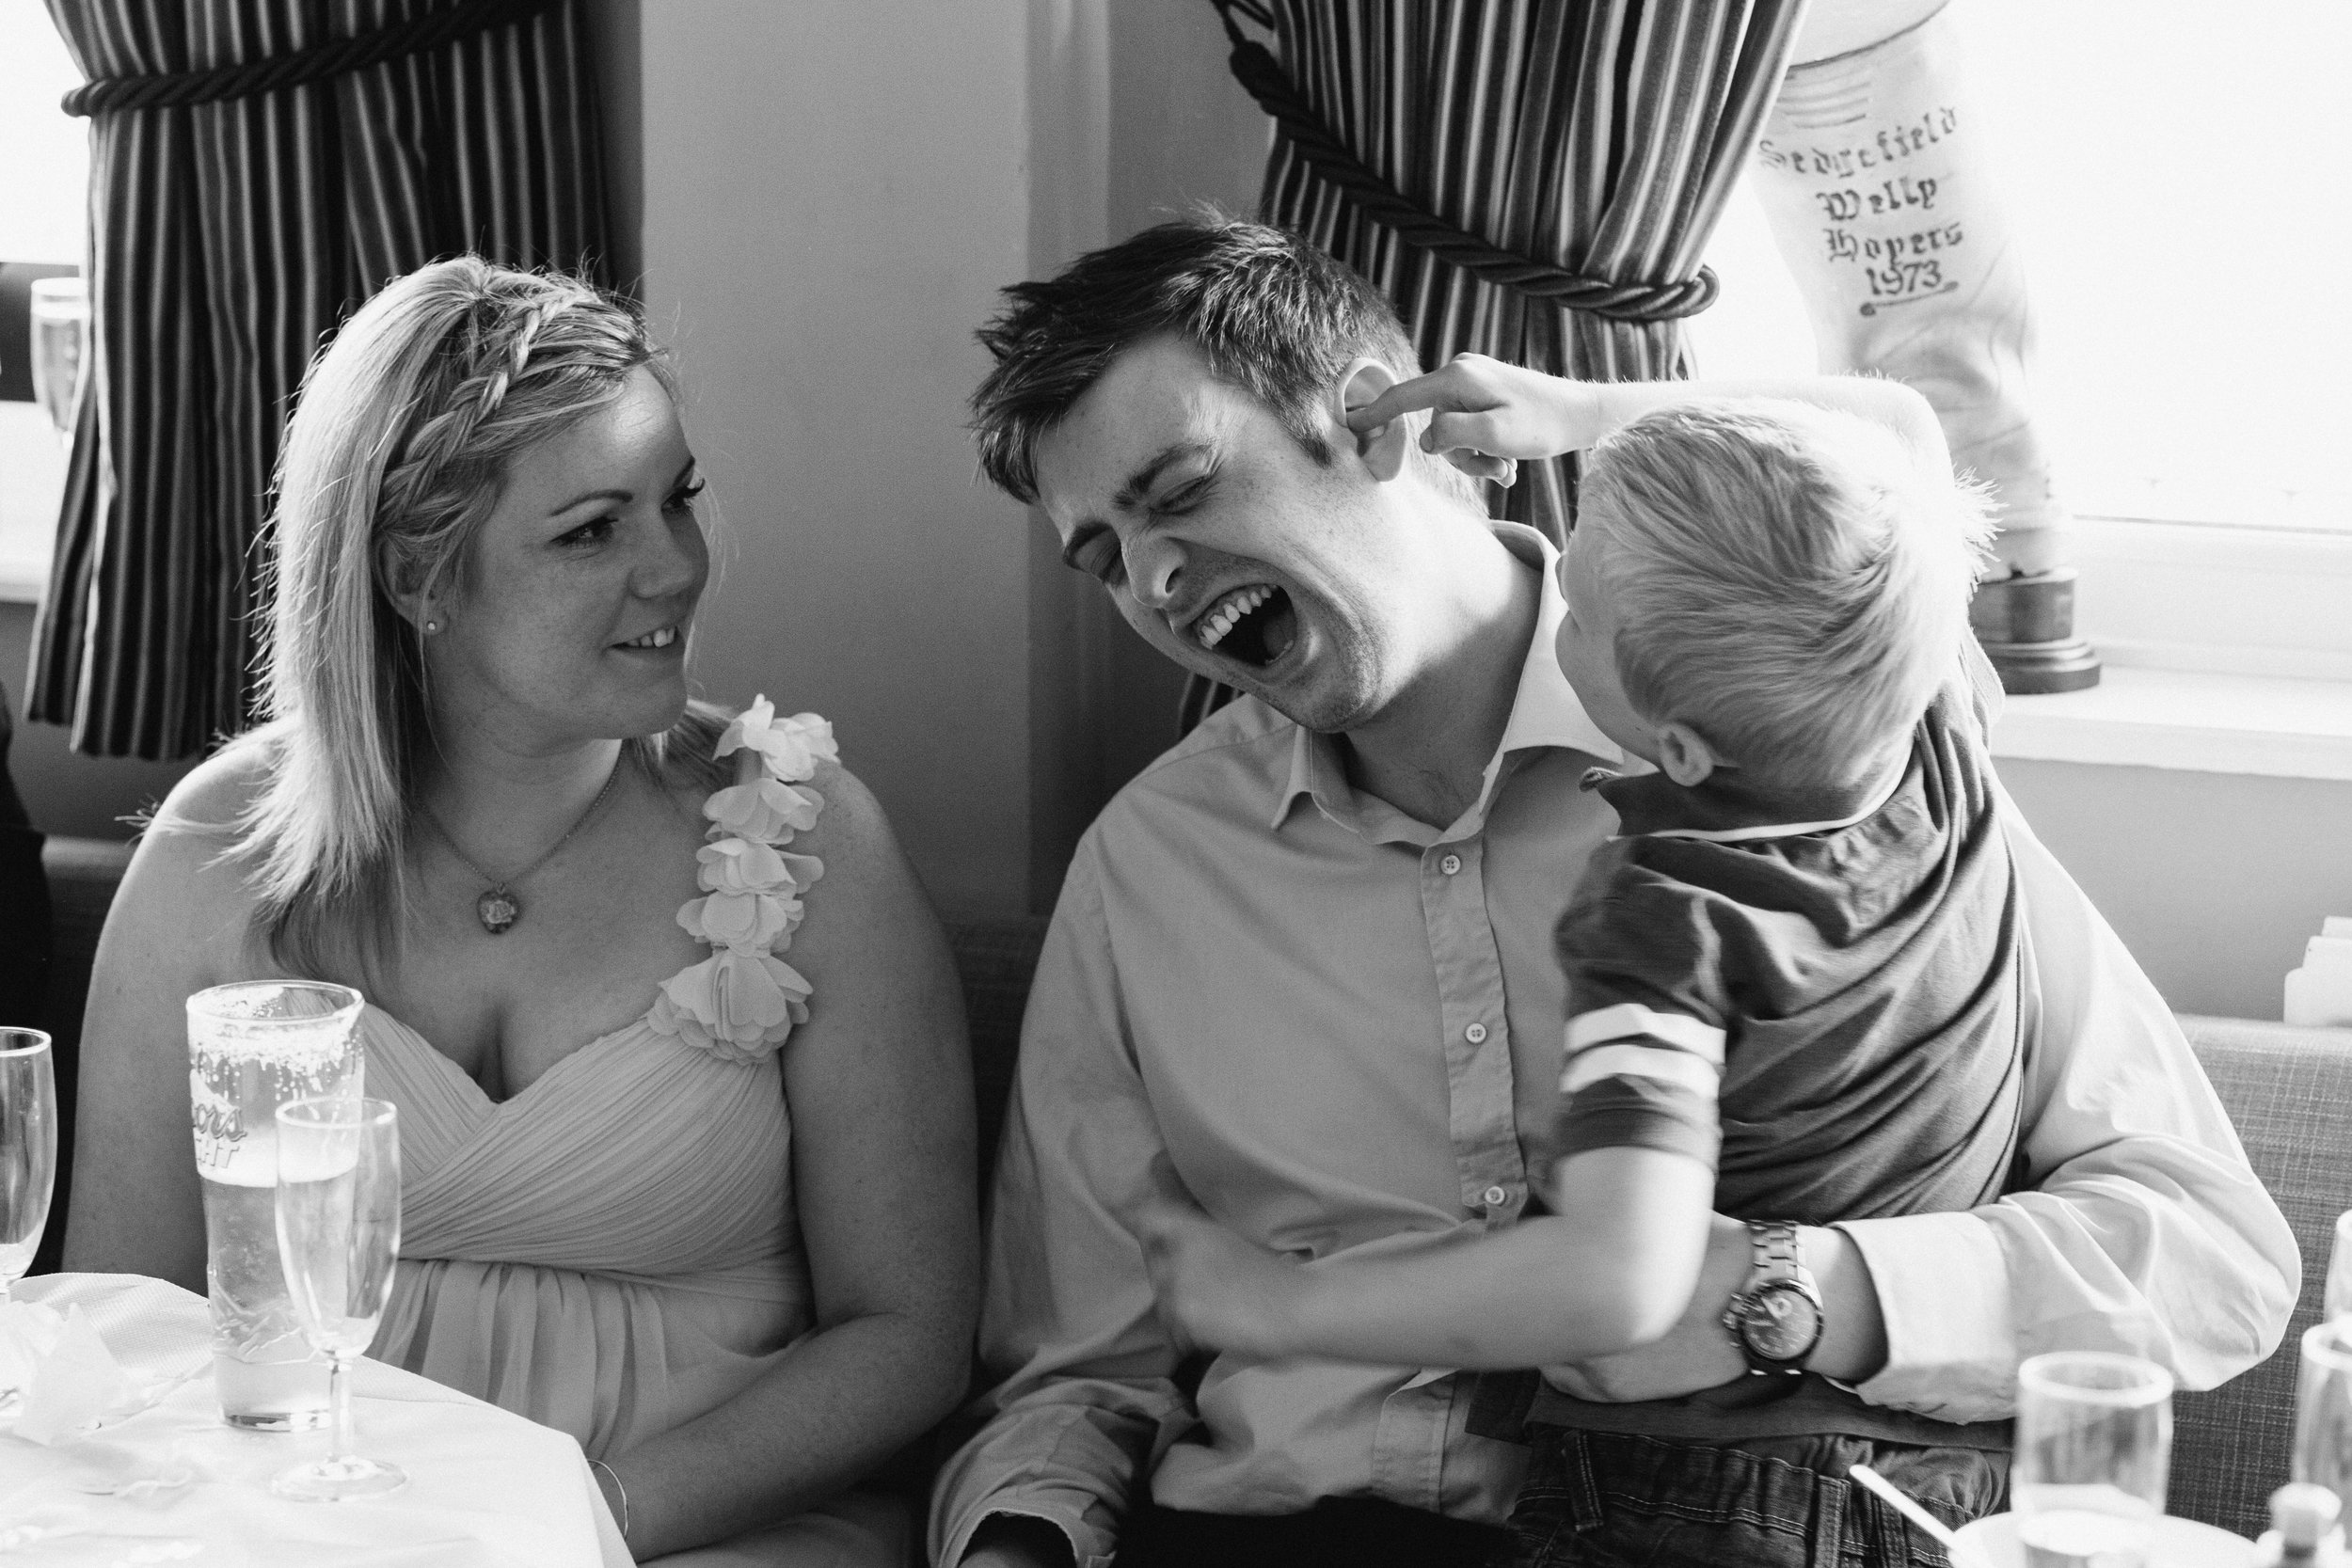 I love a wet willy at a wedding!